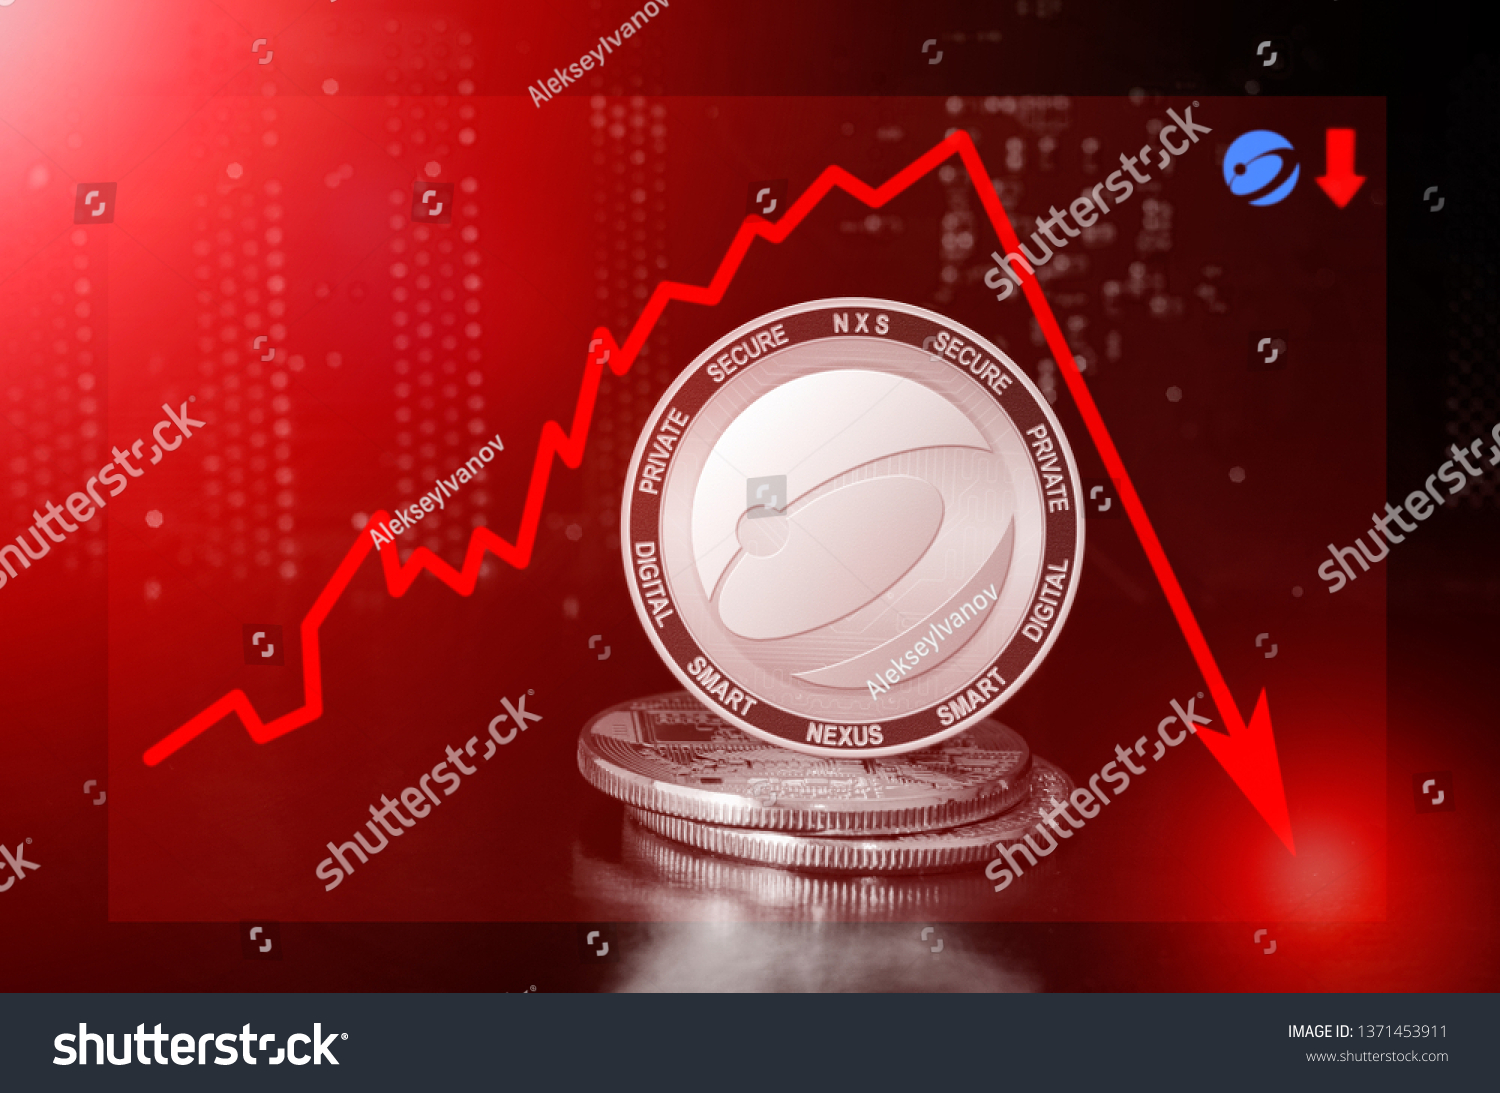 nxs cryptocurrency price